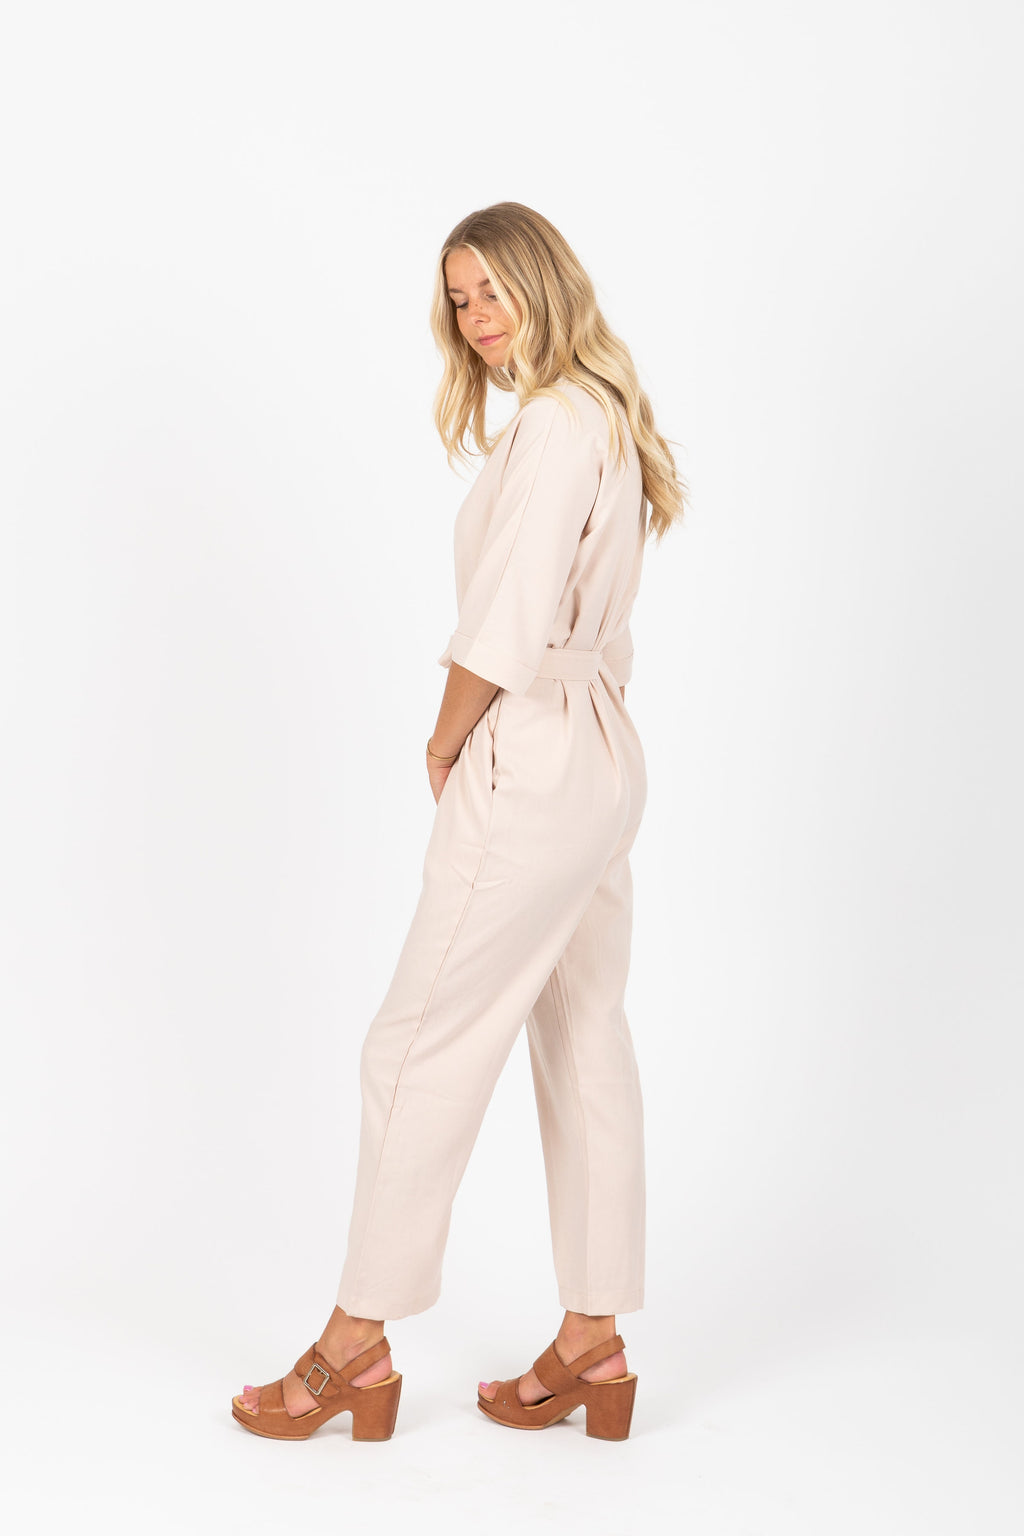 The Roto Collared Jumpsuit in Bone